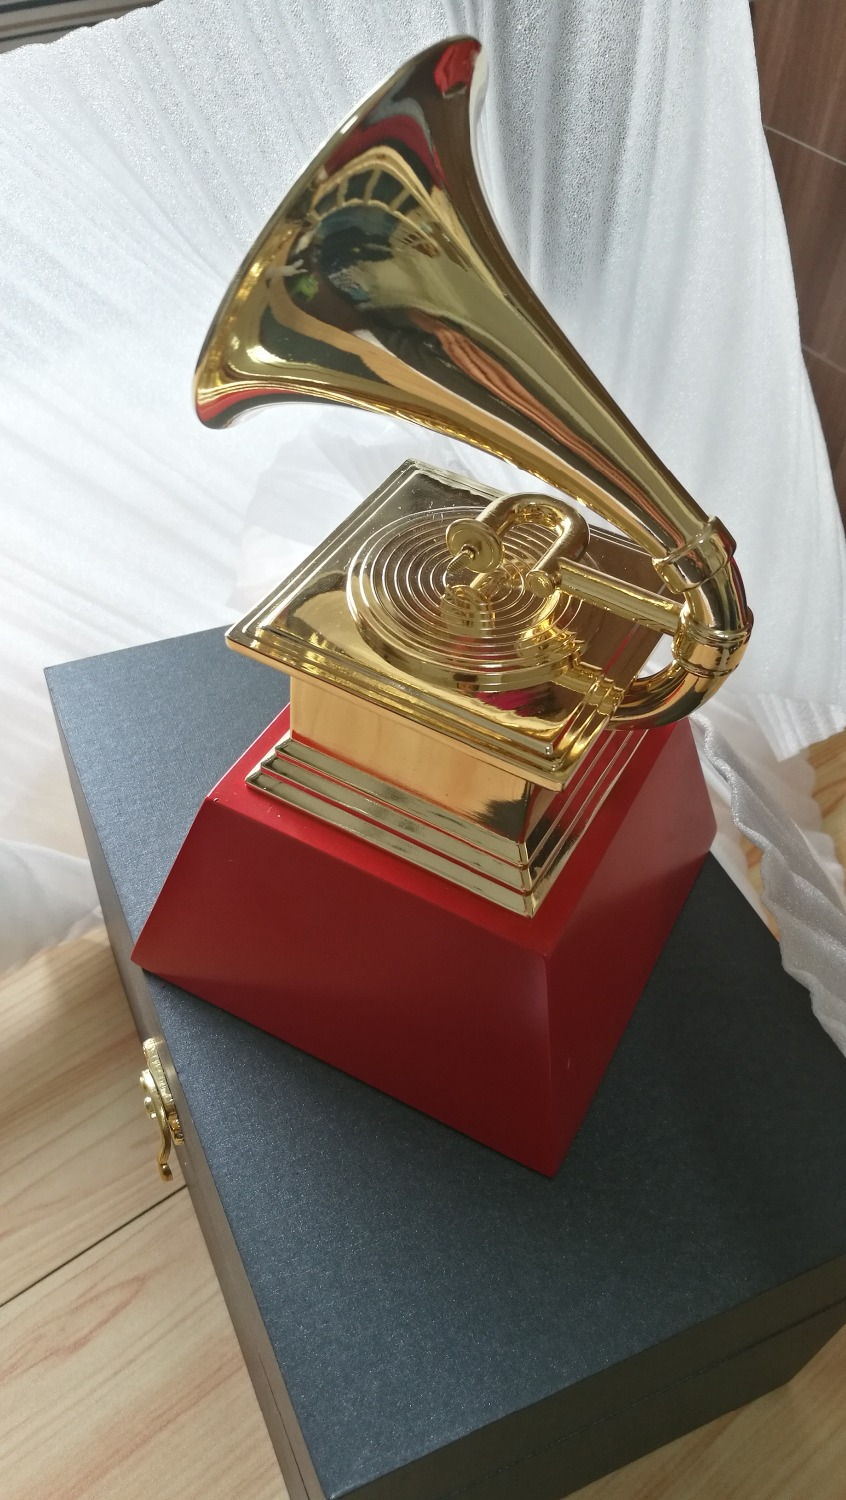 2018 GRAMMY Awards 1:1 Real Life Size 23 cm Height GRAMMYS Awards Gramophone Metal Trophy Souvenir Collection Free Shipping